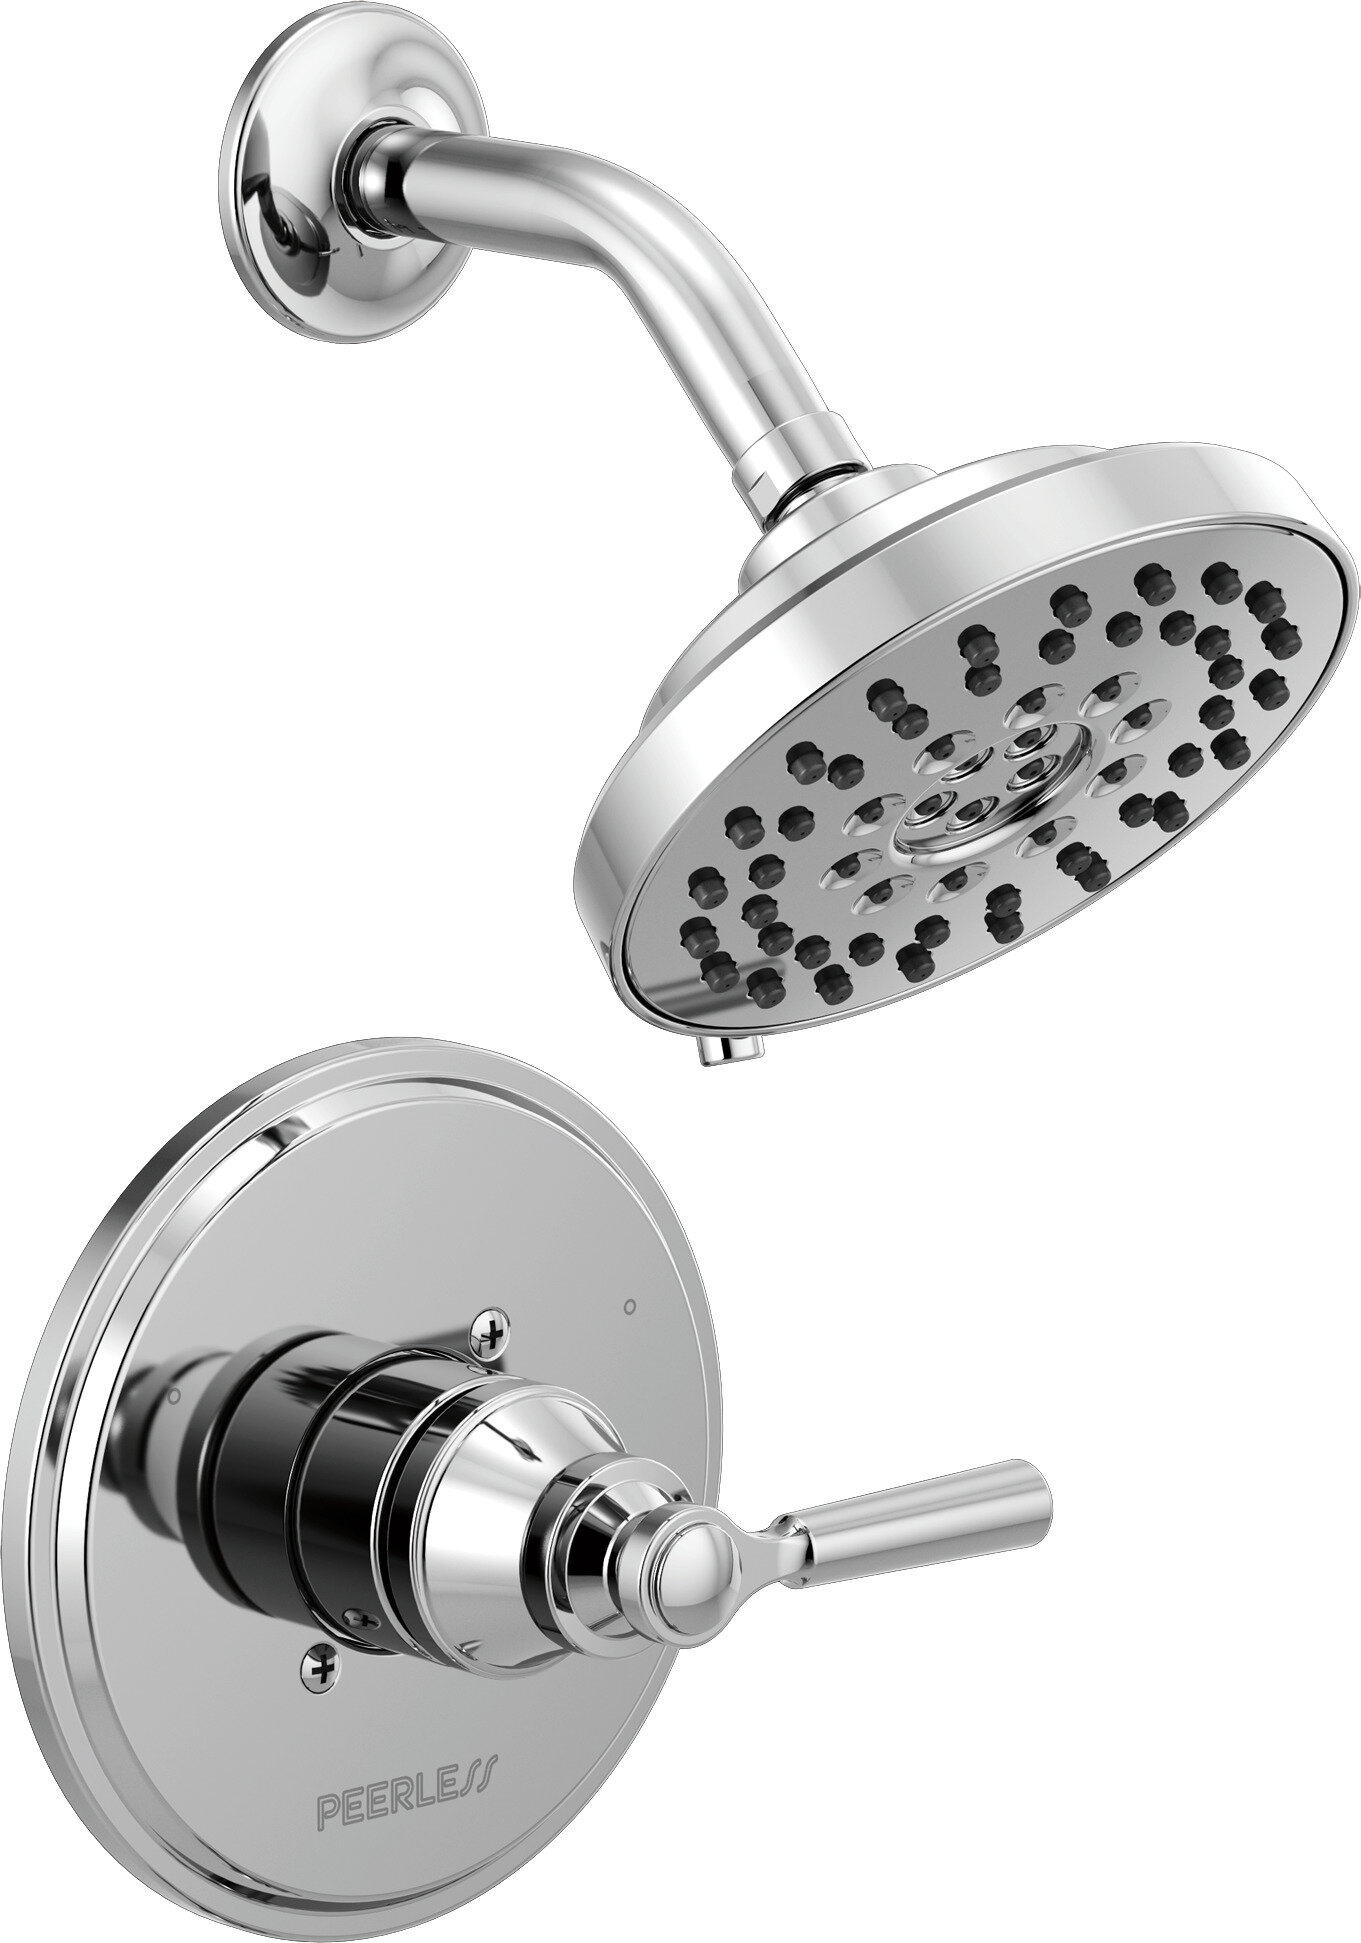 SHOWER HEAD For LOW Water Pressure Flow 1.75 gpm ON OFF Chrome PEERLESS PAIR x 2